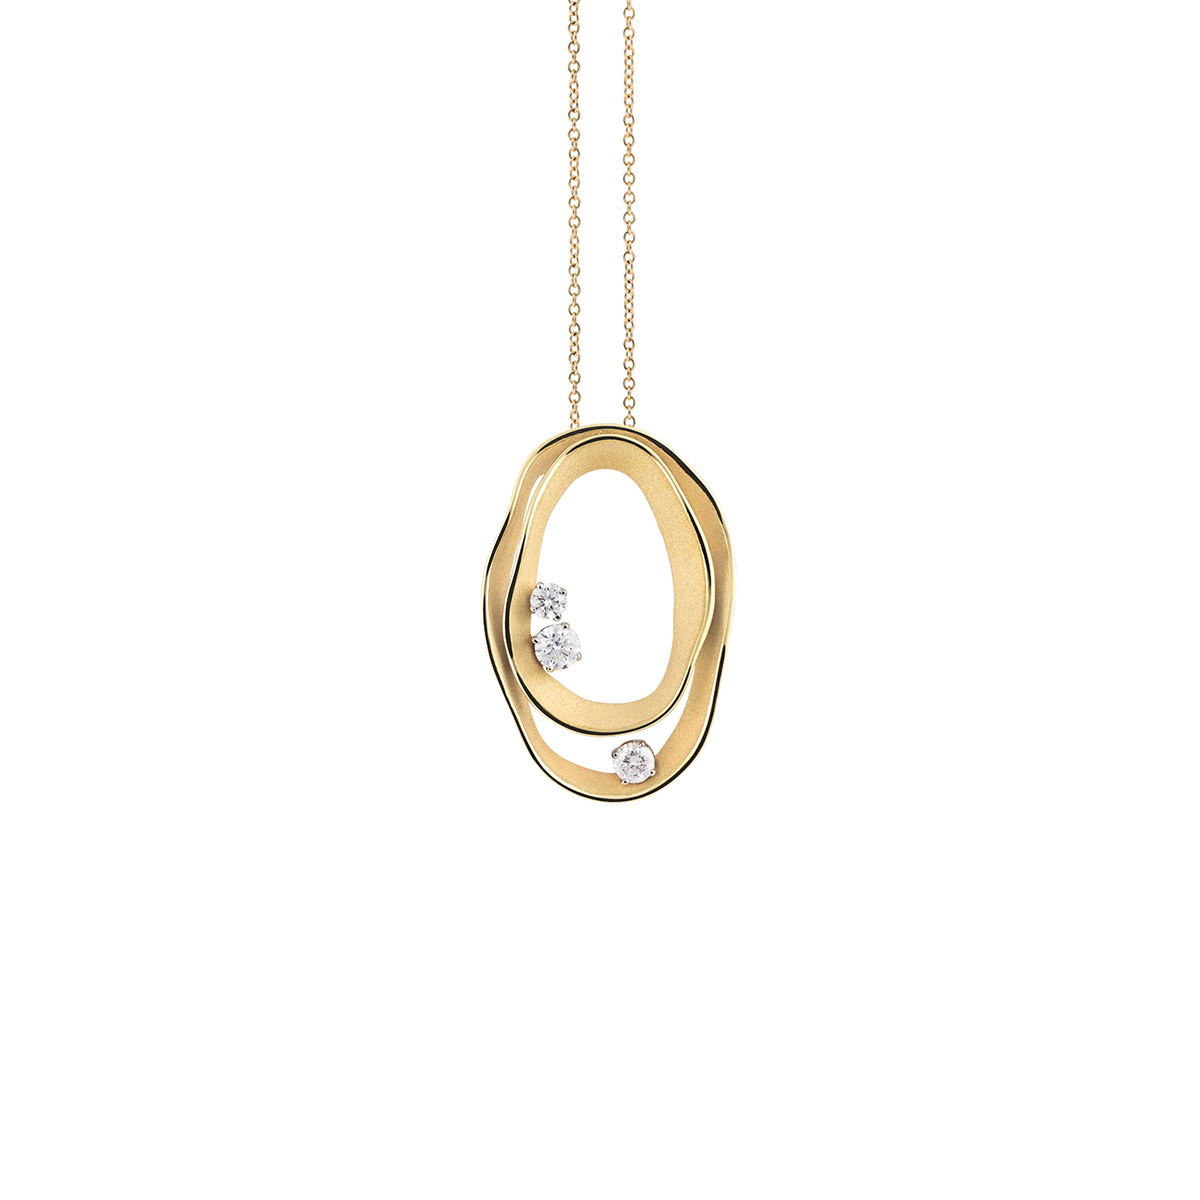 Annamaria Cammilli Dune Collier aus 18 Karat Yellow Sunrise Gold mit Brillanten